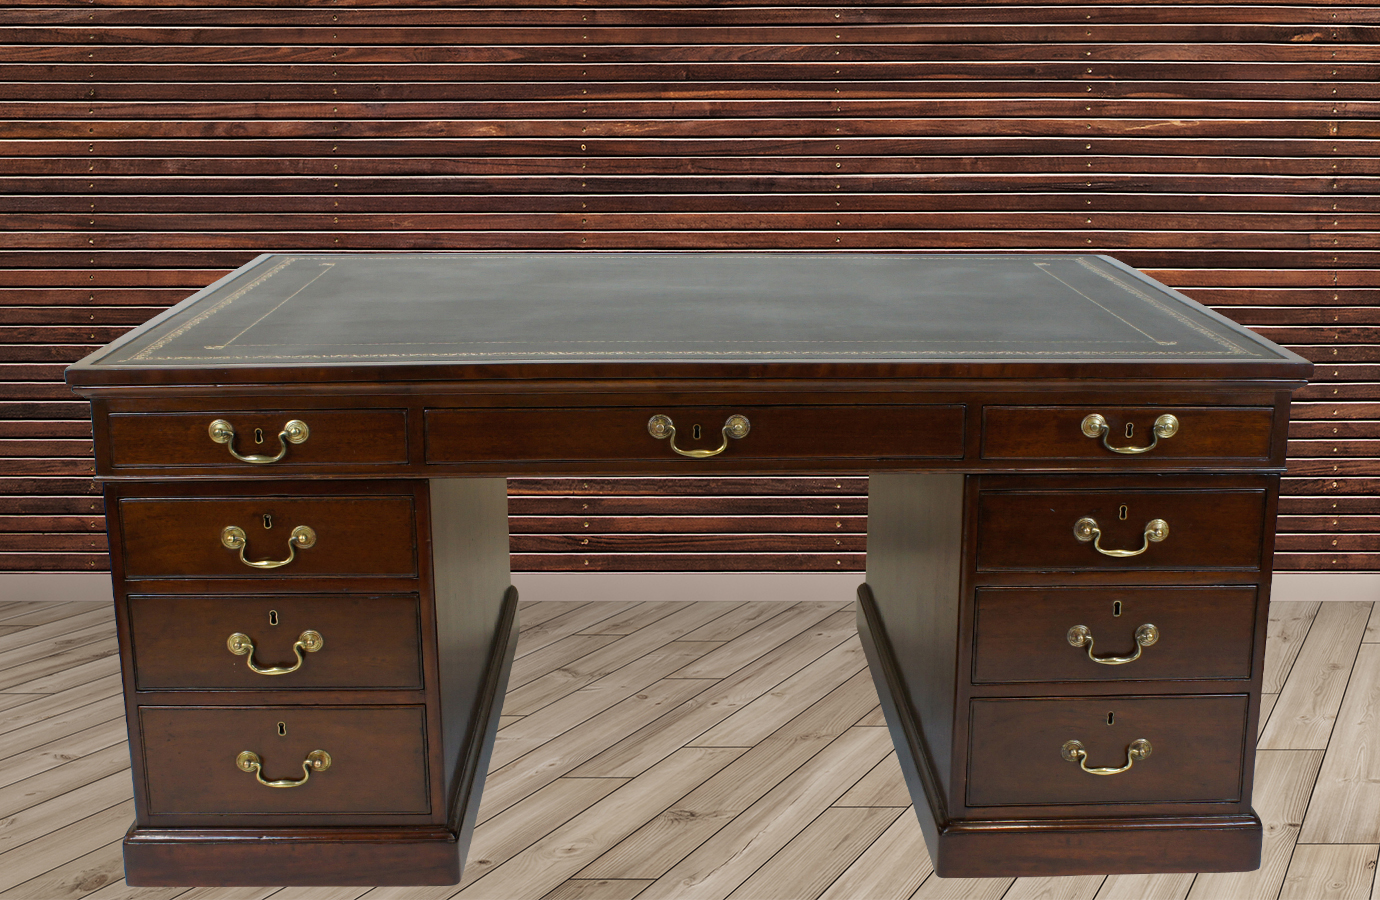 Antique Mahogany Partners Desk - Our Sold Antique Desks, Library Desks, Partners Desks And Antique